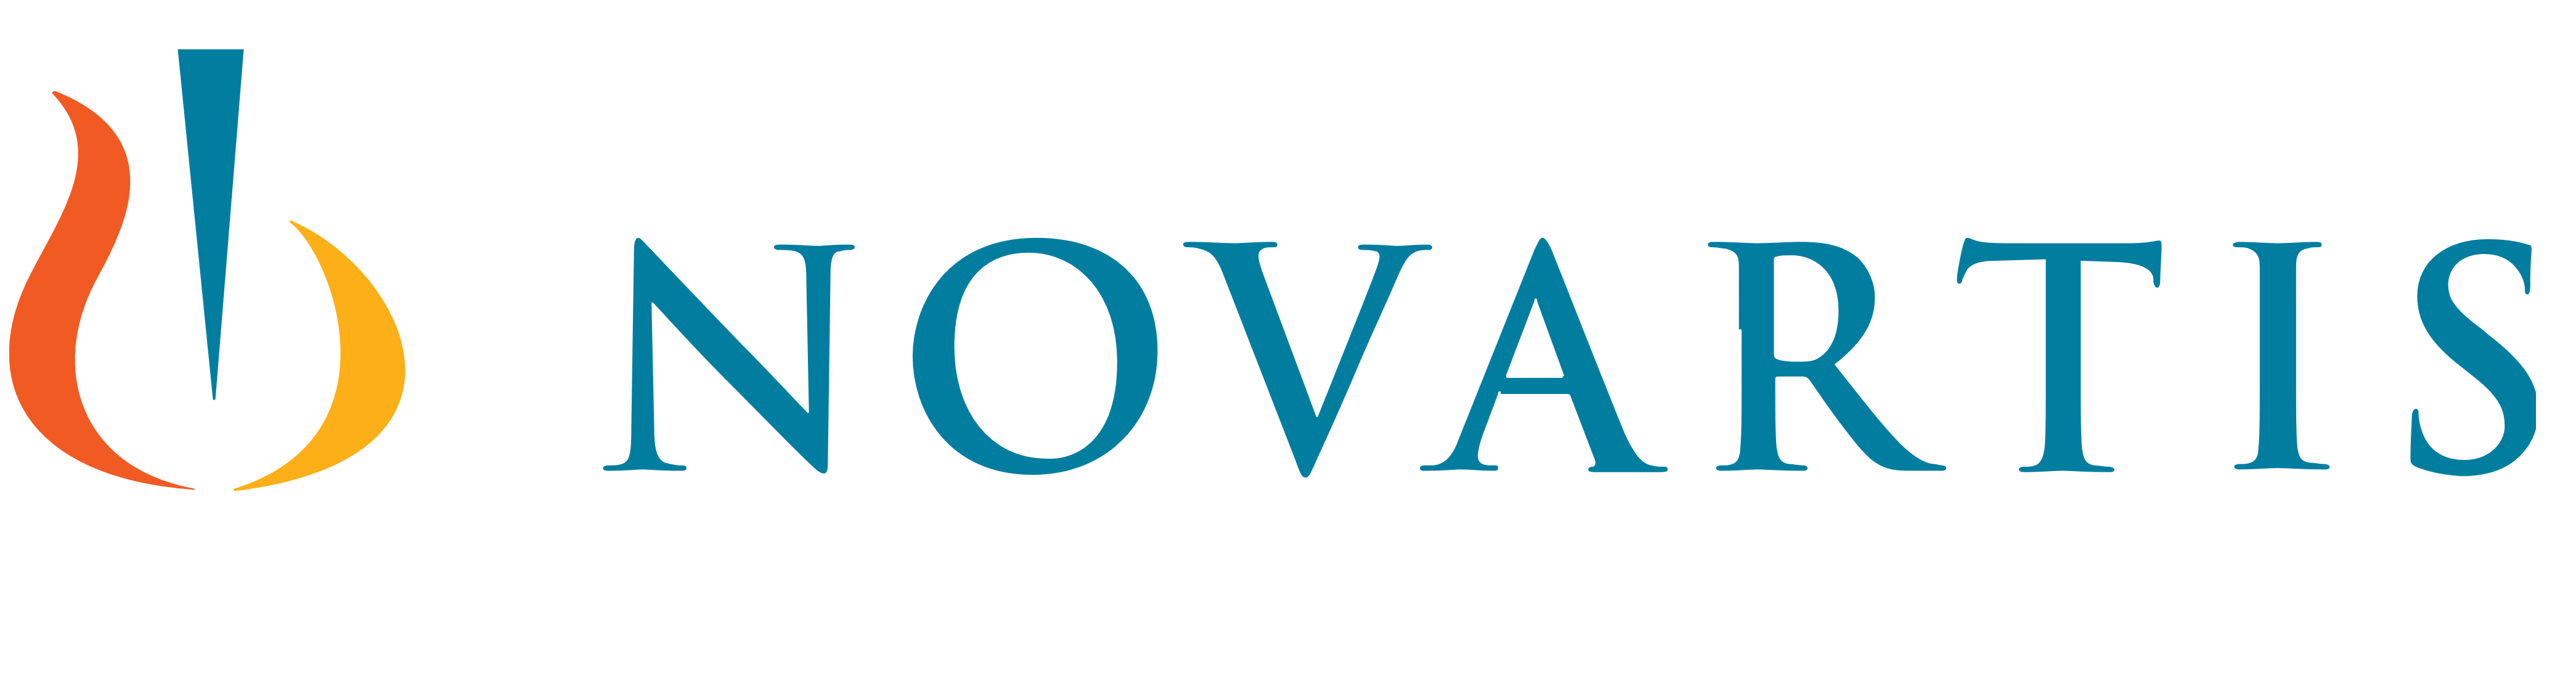 https://www.exaltech.it/wp-content/uploads/2019/11/Novartis_logo.png